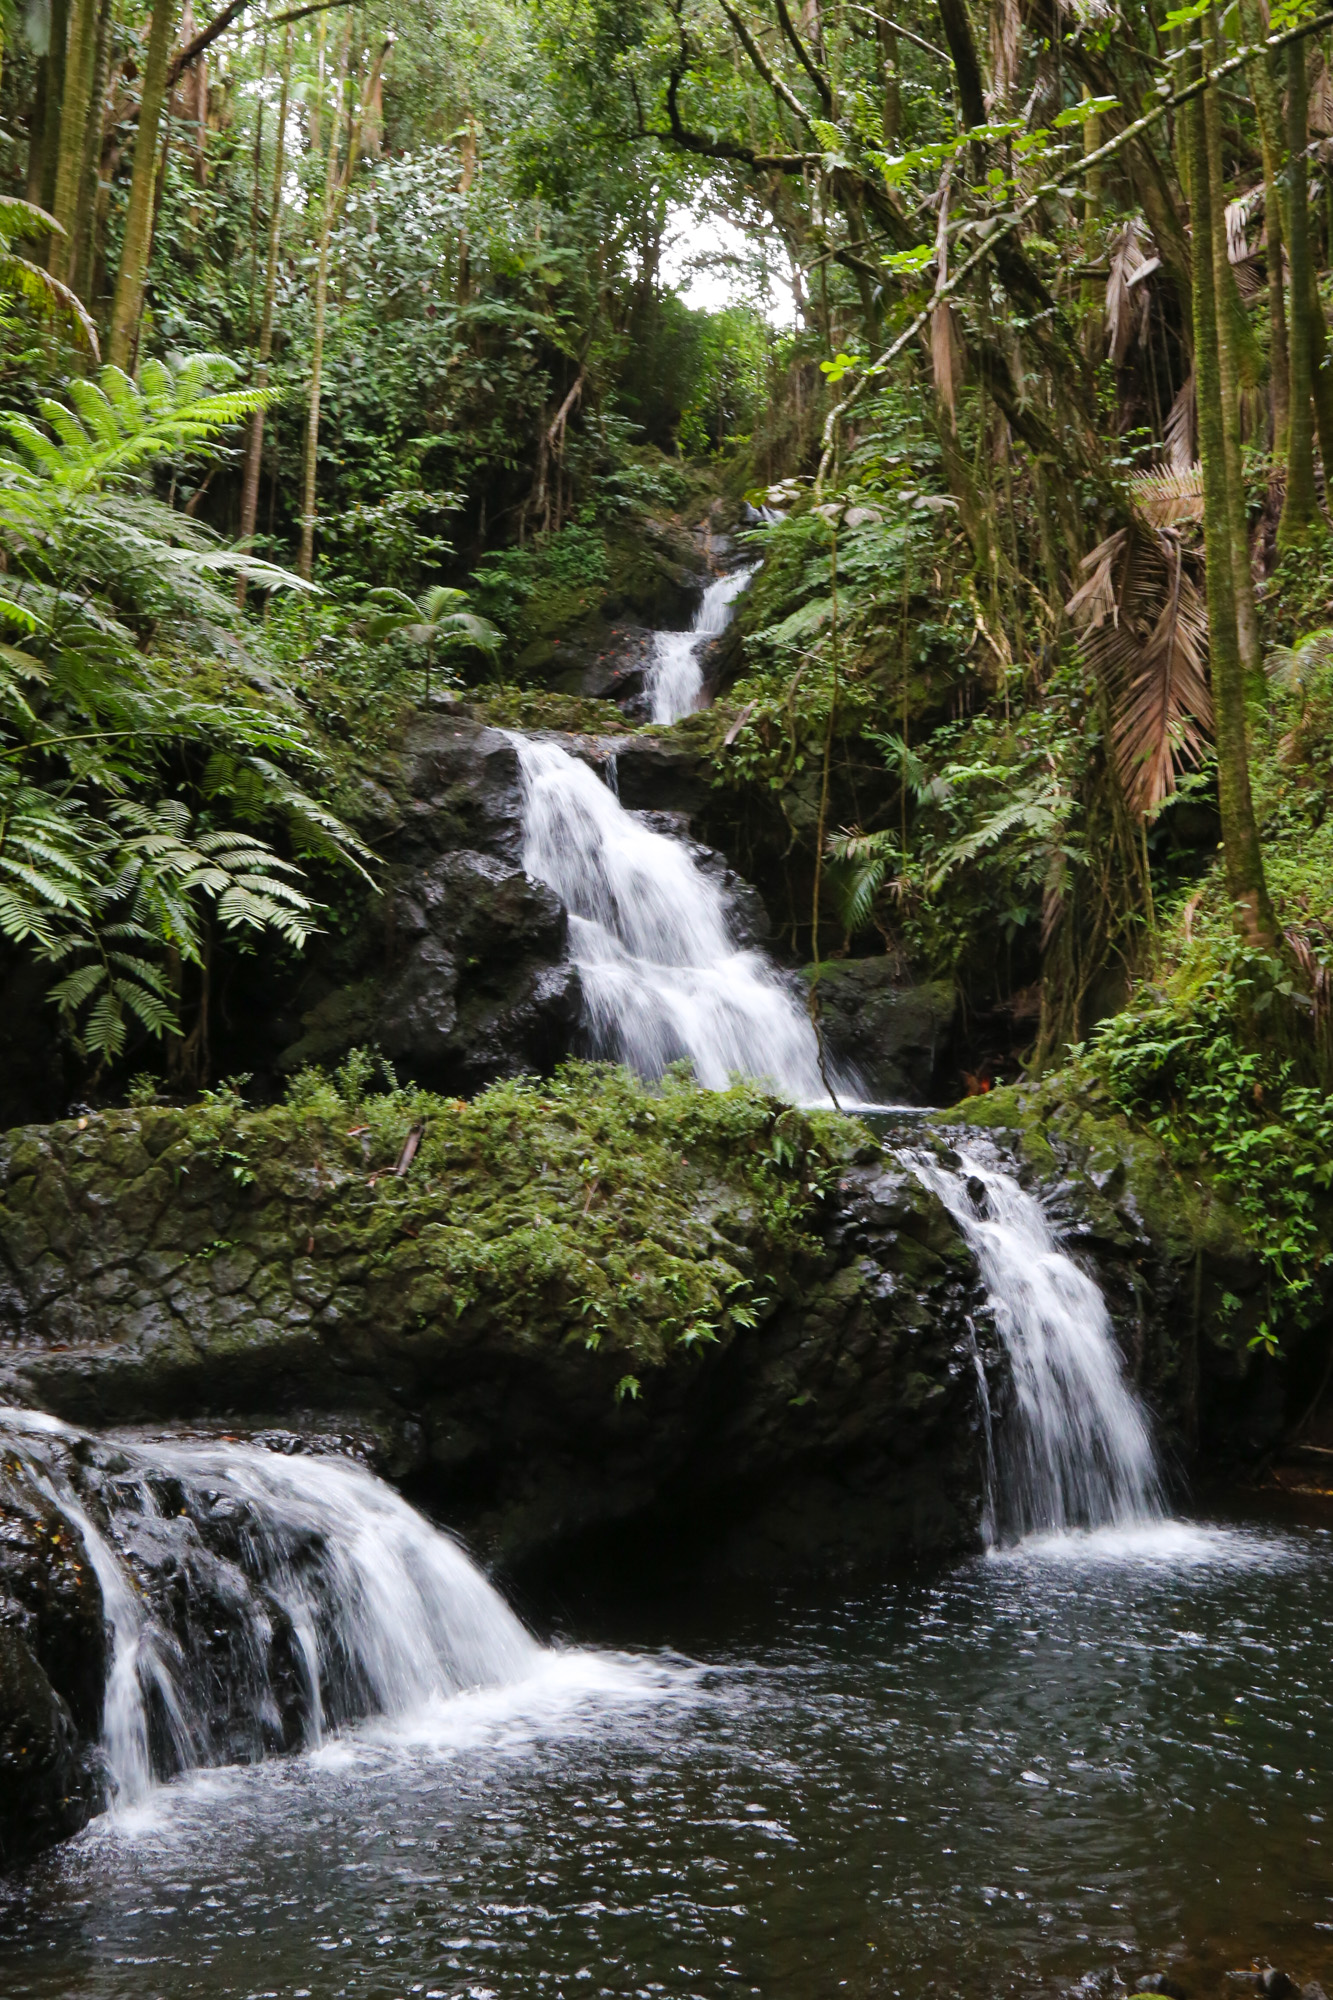 original_caughey-melissa-hawaii-garden-waterfall